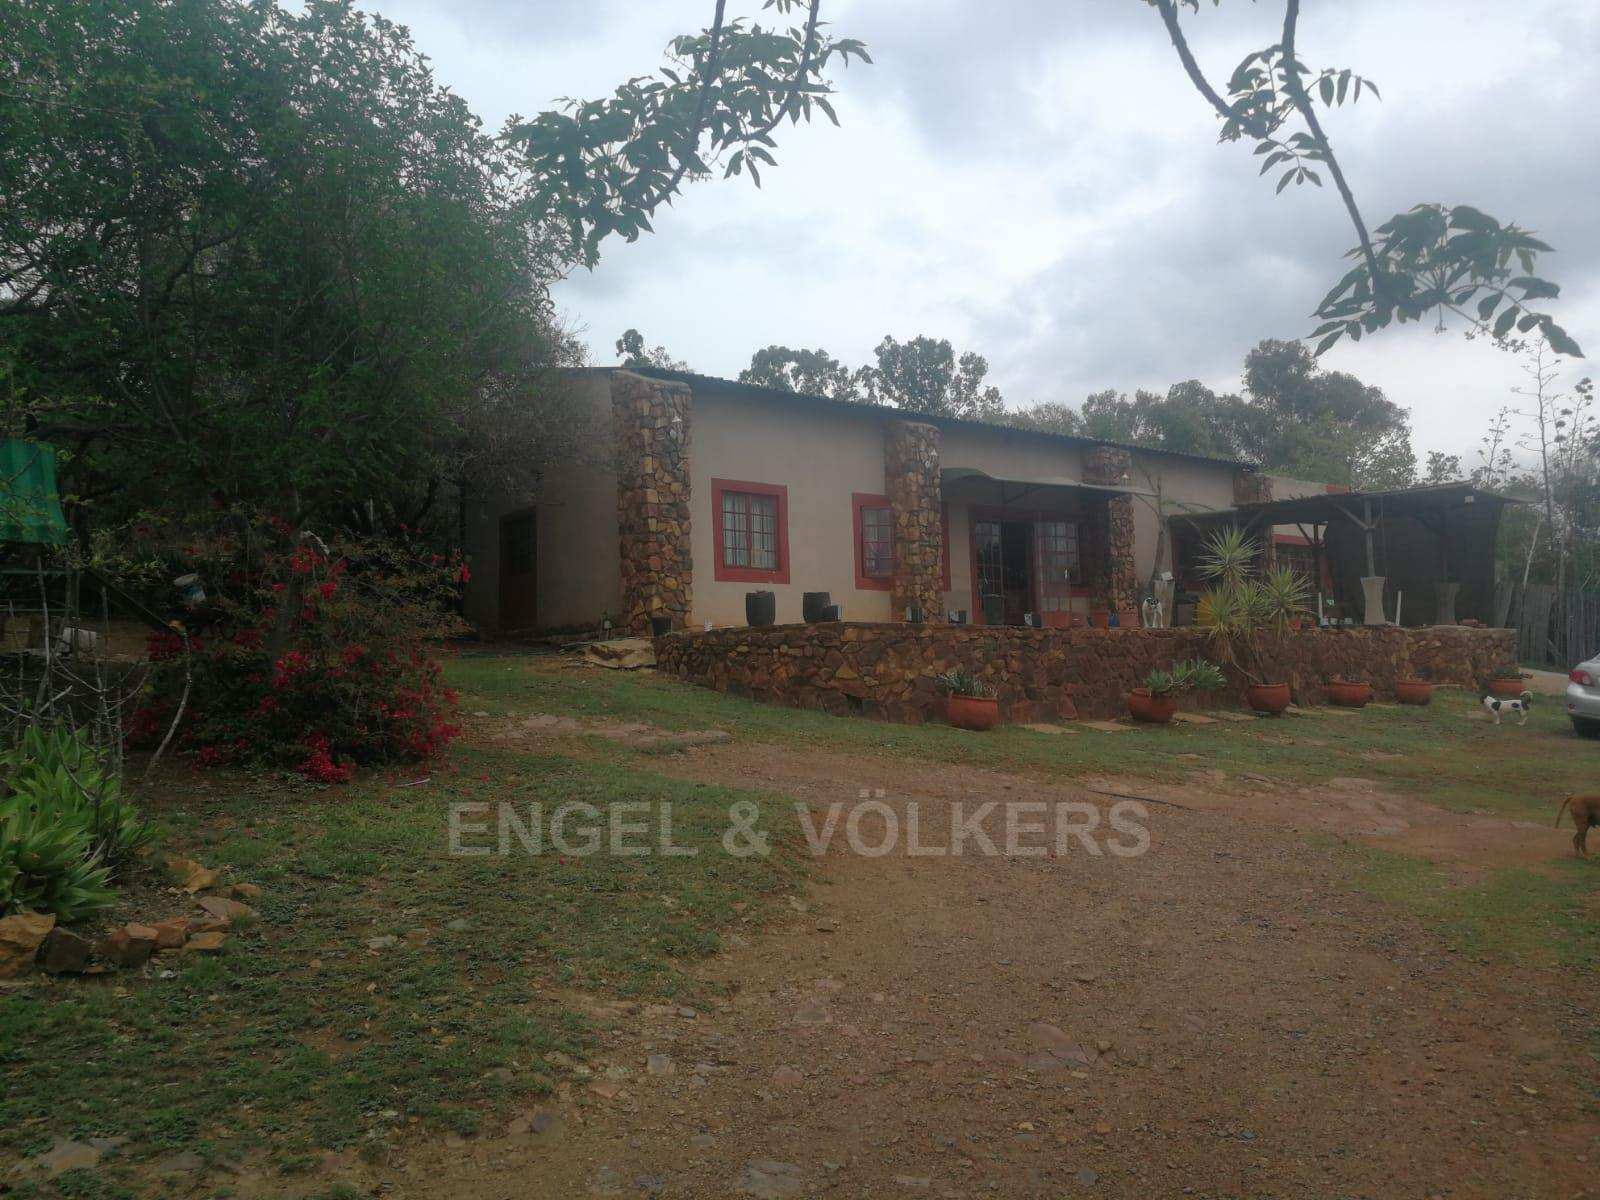 Land in Hartbeespoort Dam Area - 2nd house on property